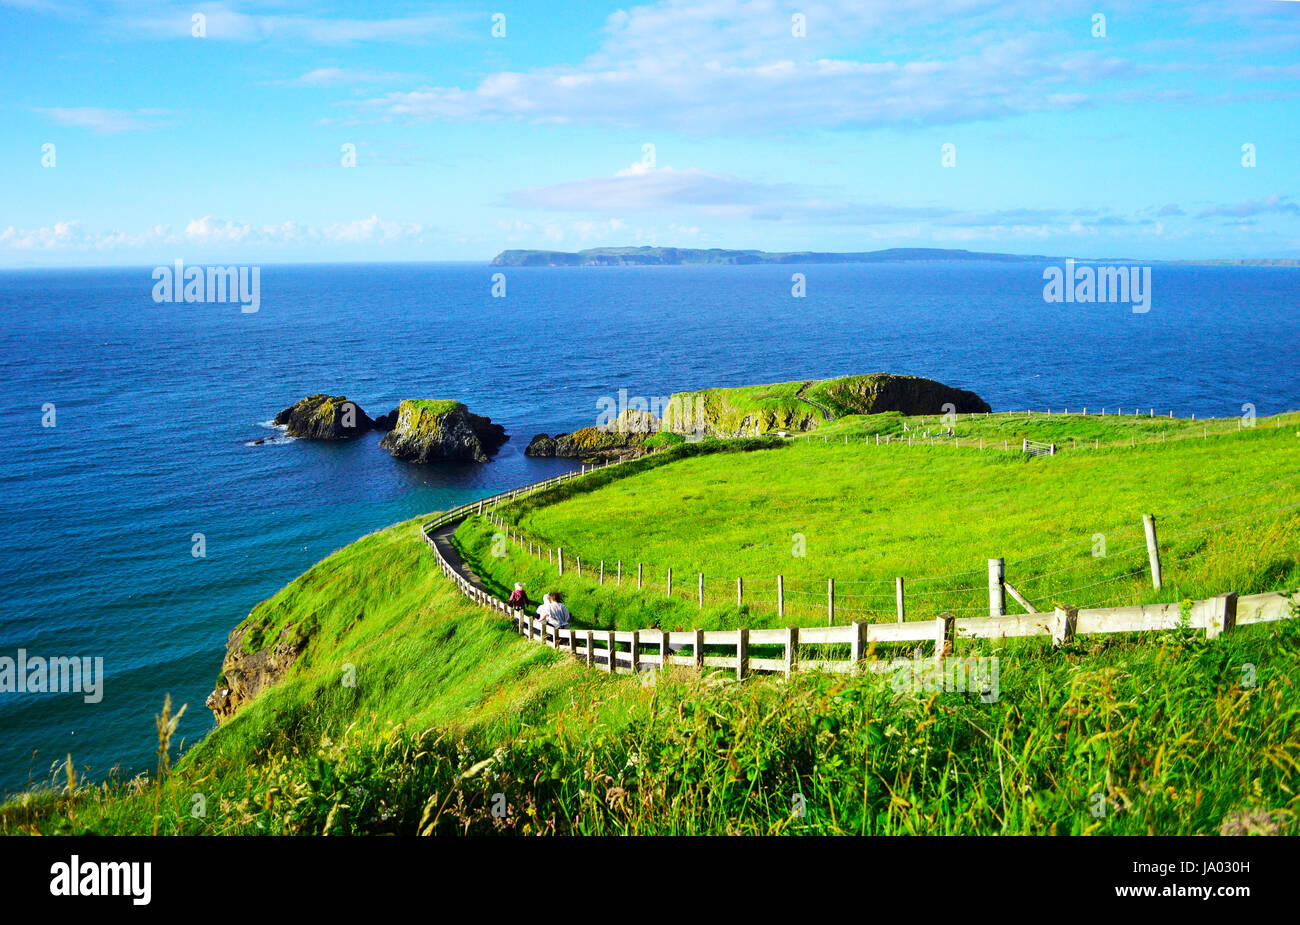 People Walking Along the Coastline Footpath to Carrick-a-Rede Rope Bridge in a Sunny Day, Giant's Causeway, - Stock Image